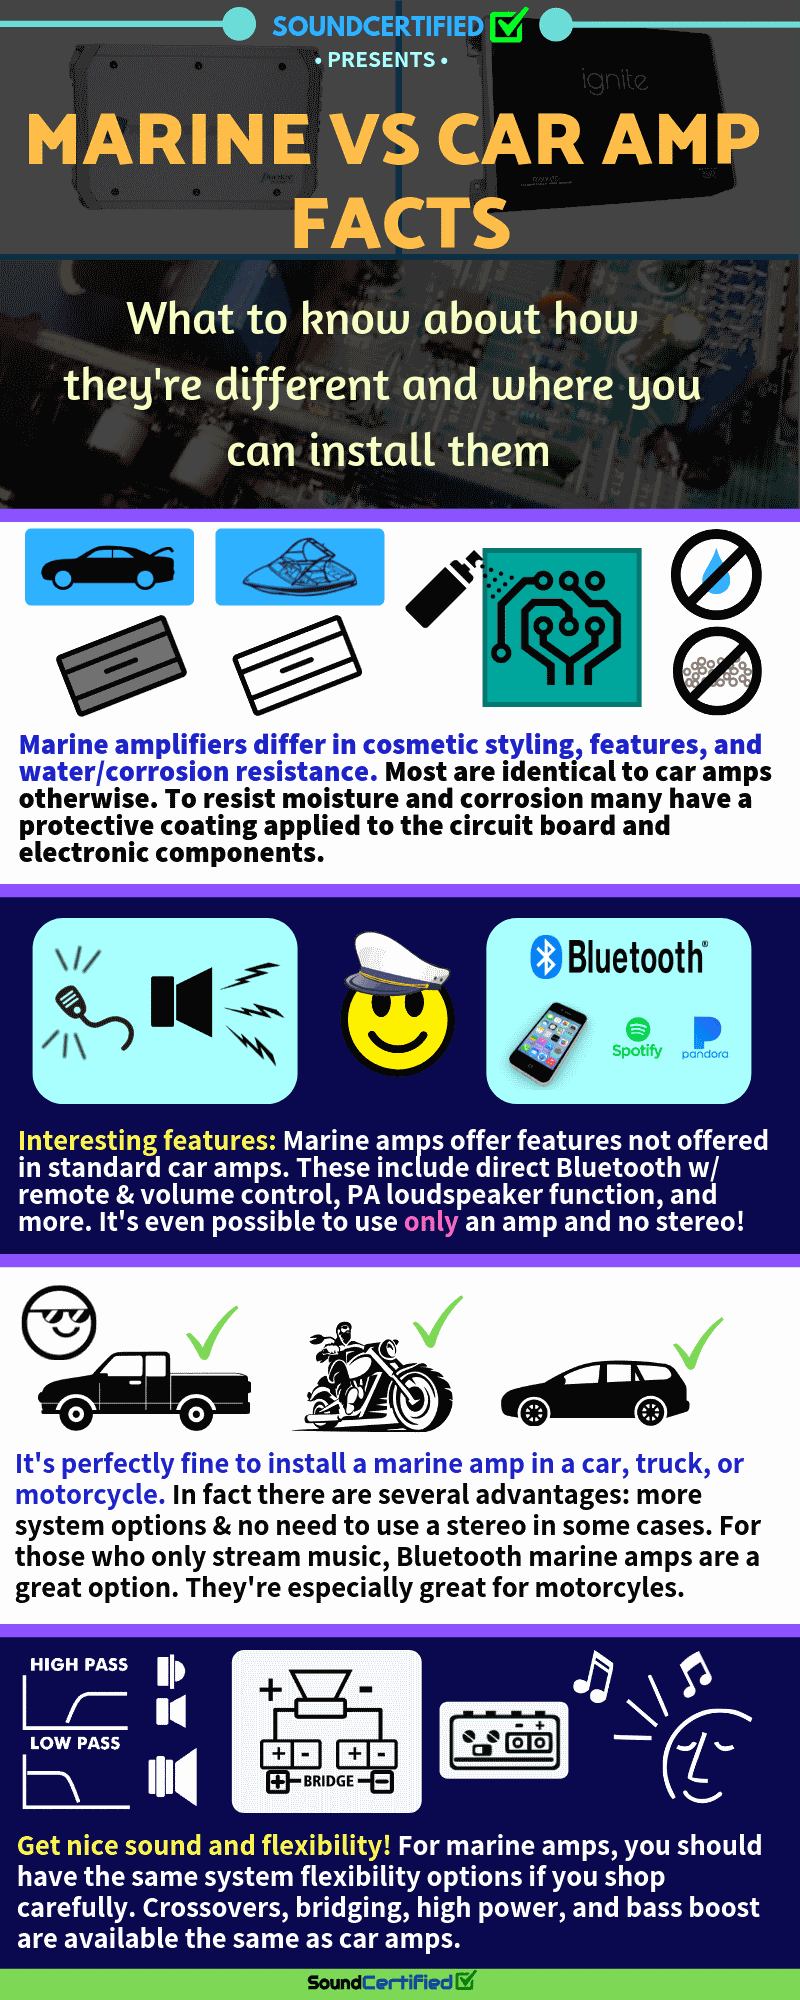 Infographic explaining the differences marine amps vs car amps + car installation tips